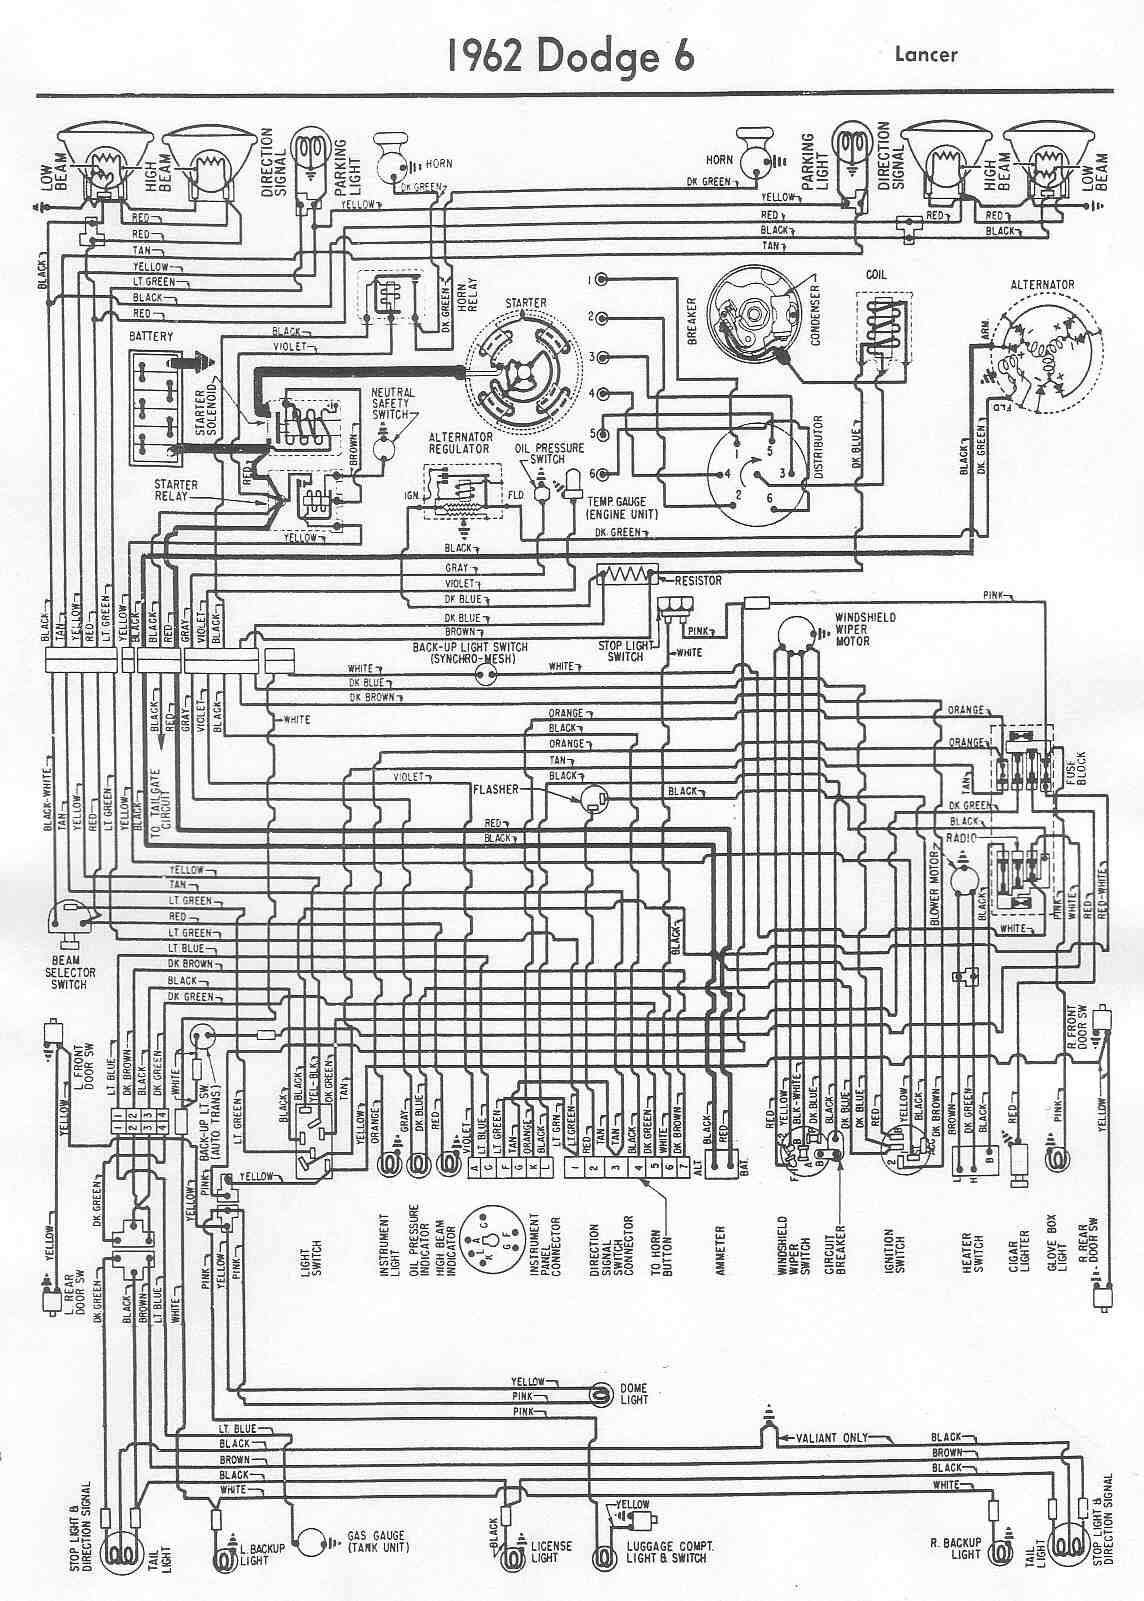 2004 Dodge Magnum General Fuse Box Diagram Car Manuals Wiring Diagrams Pdf Fault Codes Download